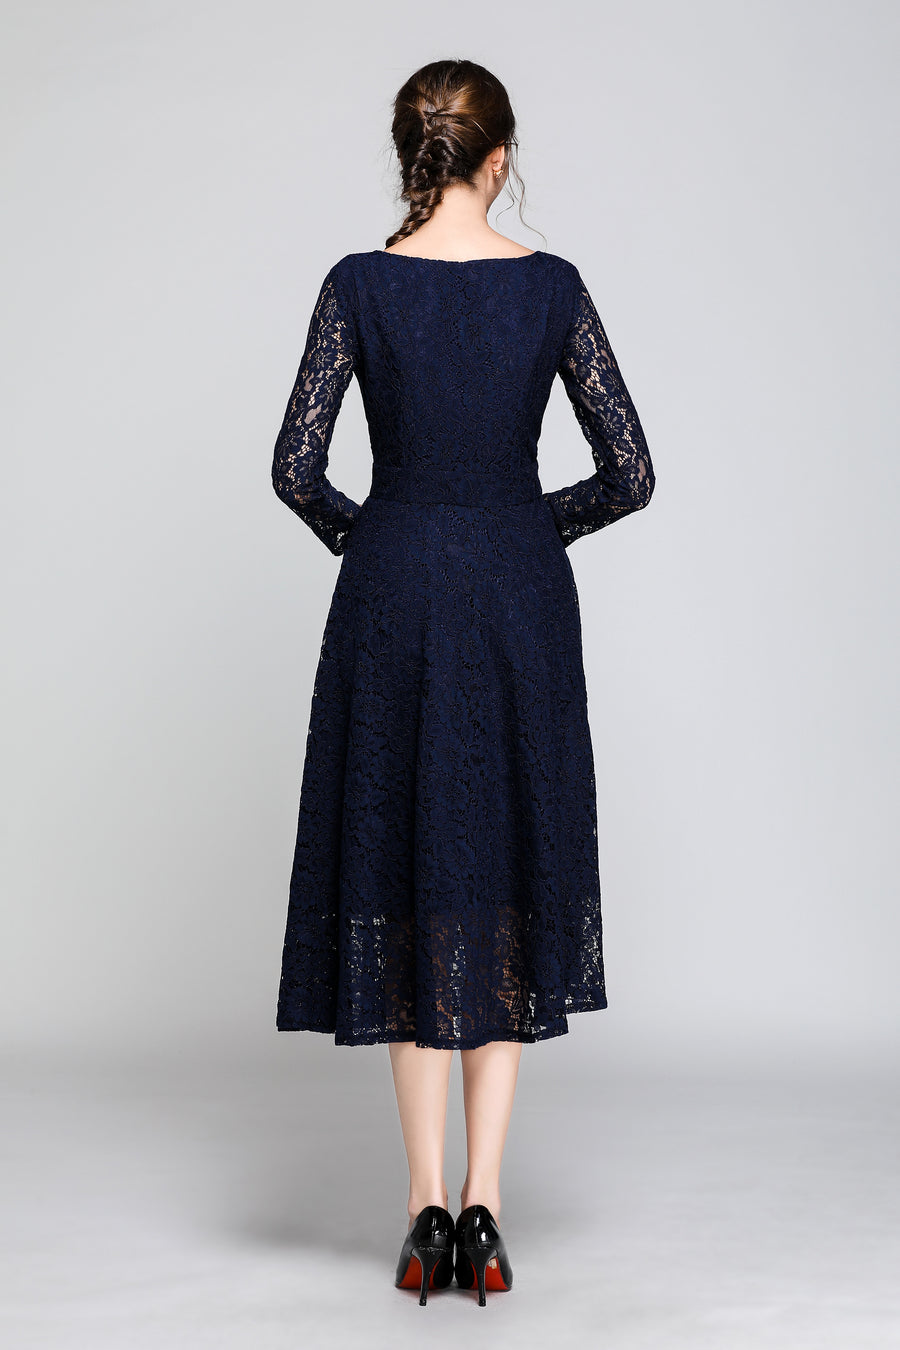 Dark Blue V-neck Lace Floral Hollow Out Midi Dress